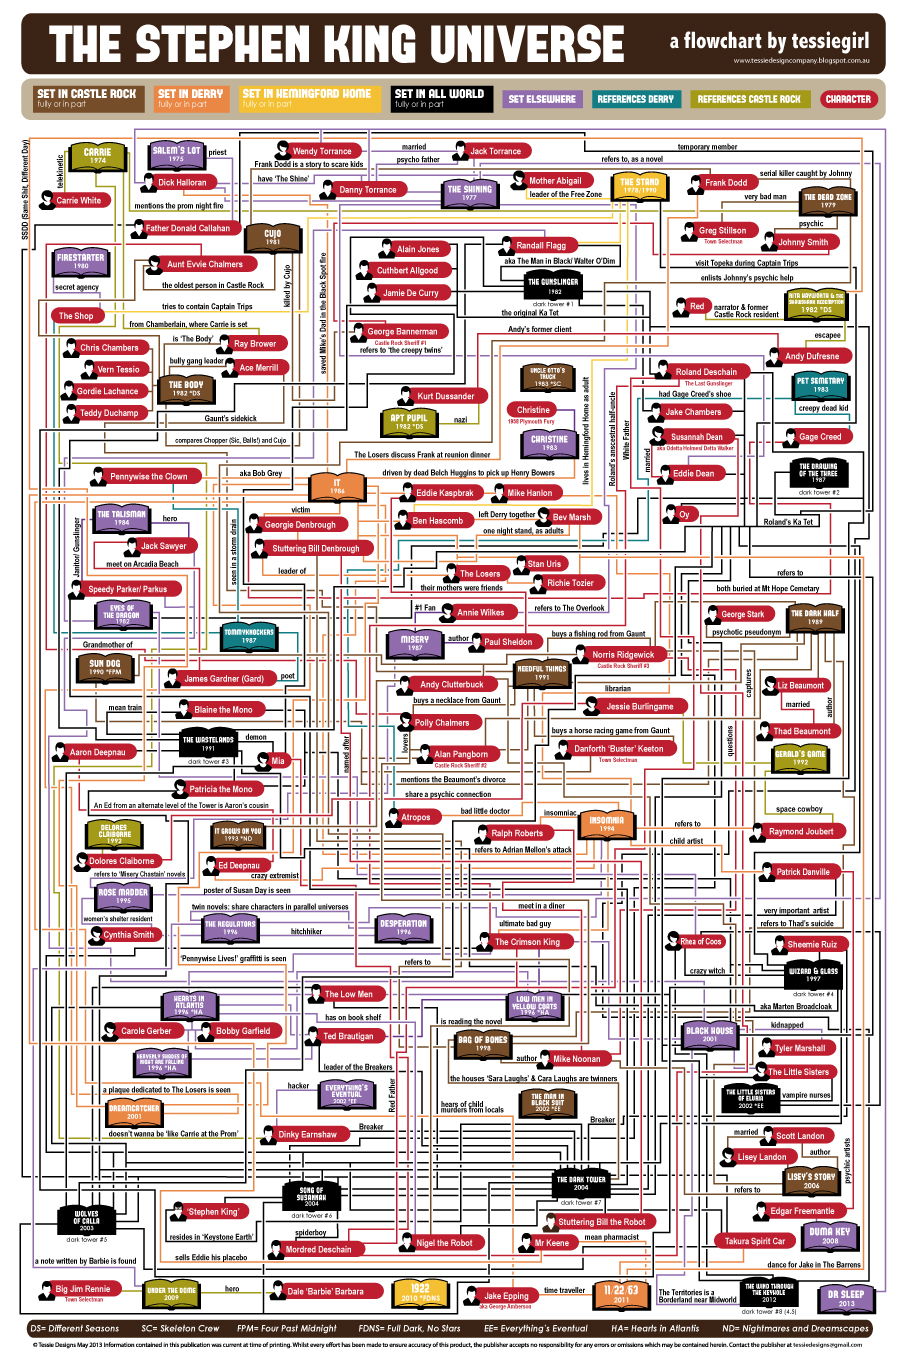 The Stephen King Universe infographic poster